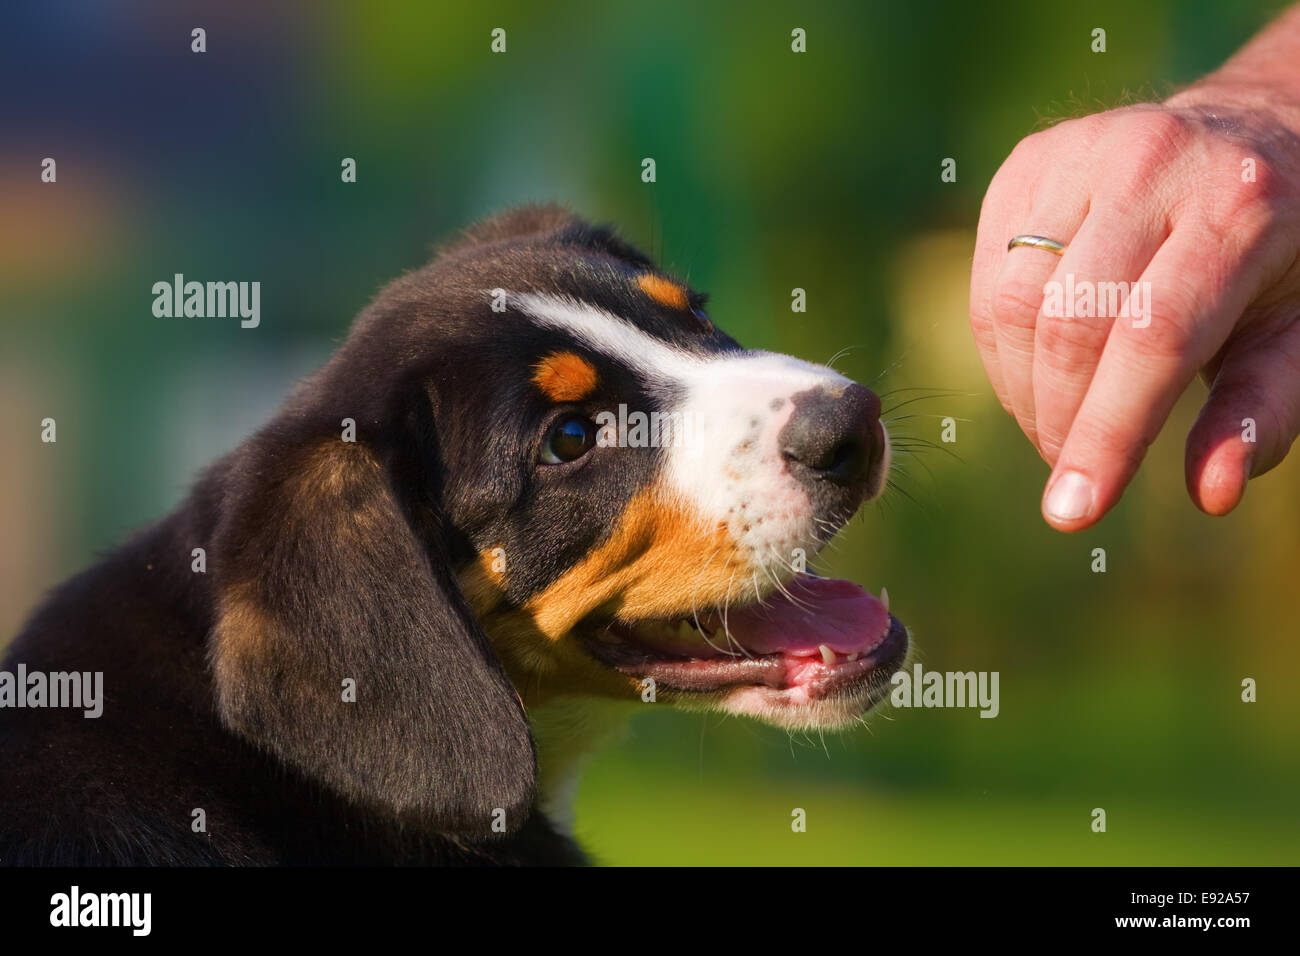 hand reaches at a puppy - Stock Image